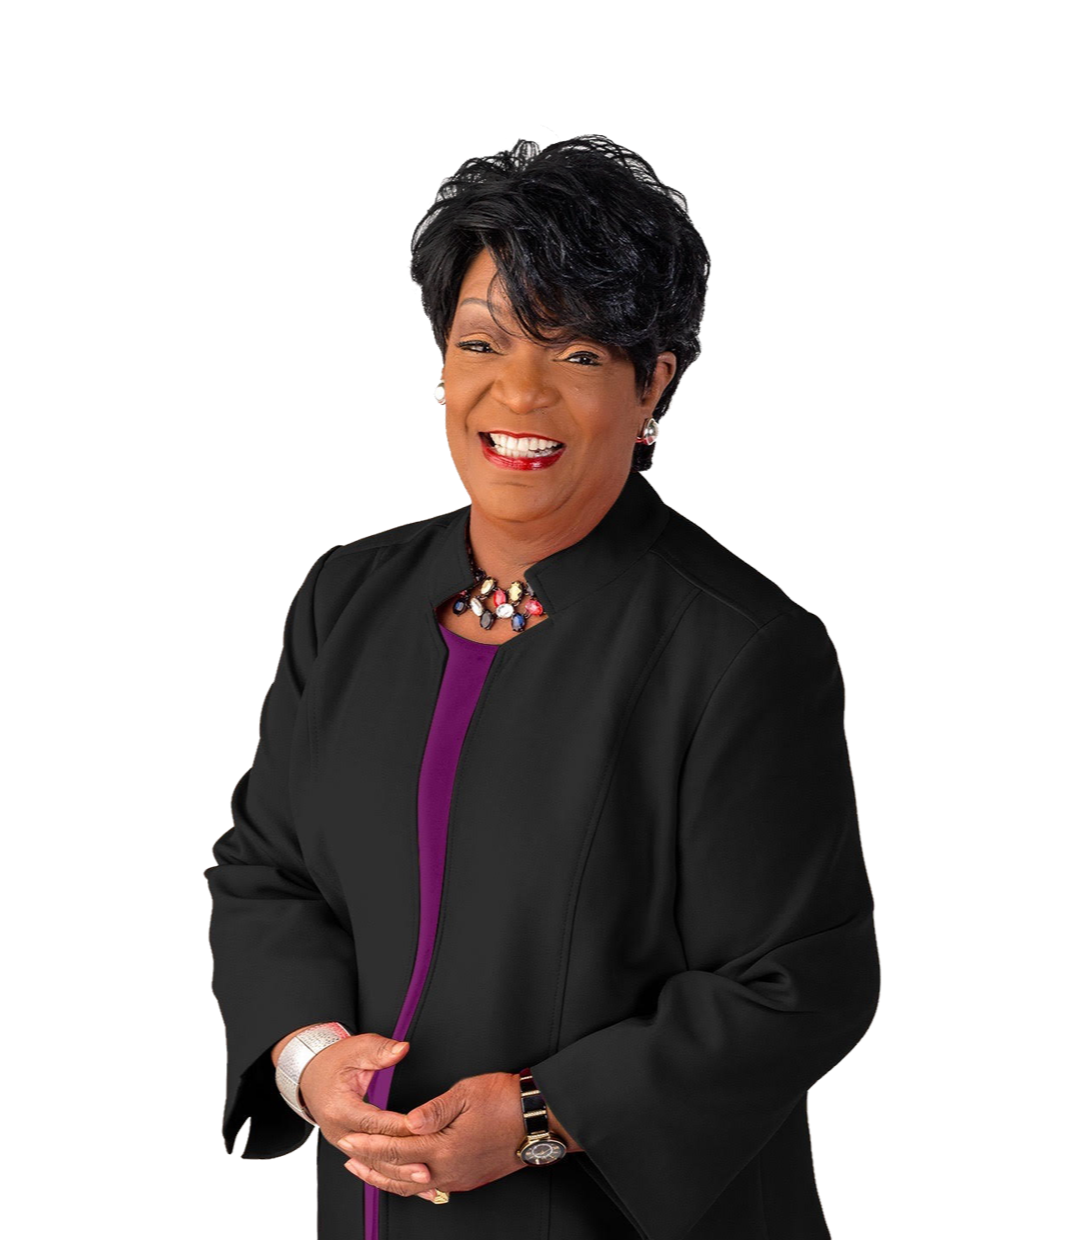 Innovator and Inventer Dr. Paula A. Price